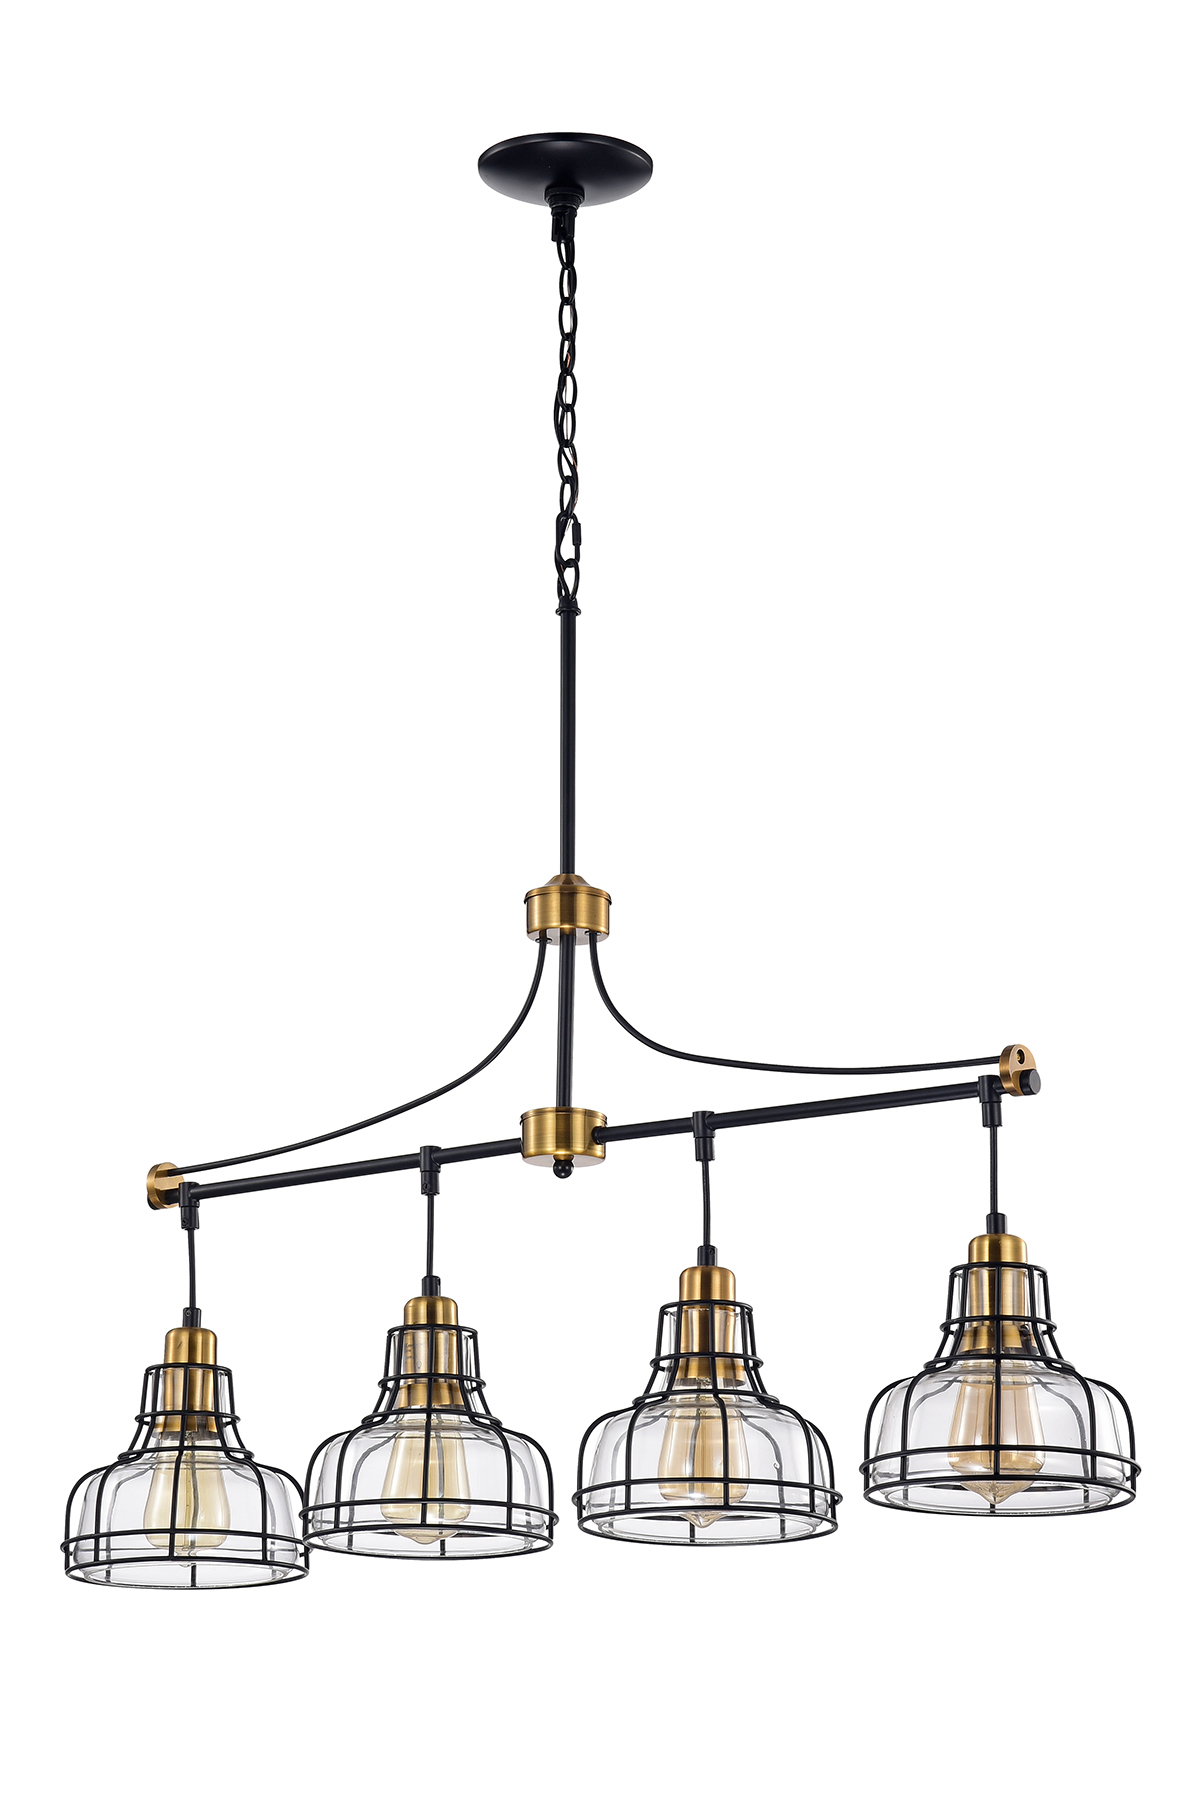 4 Light Black And Antique Gold Linear Chandelier With